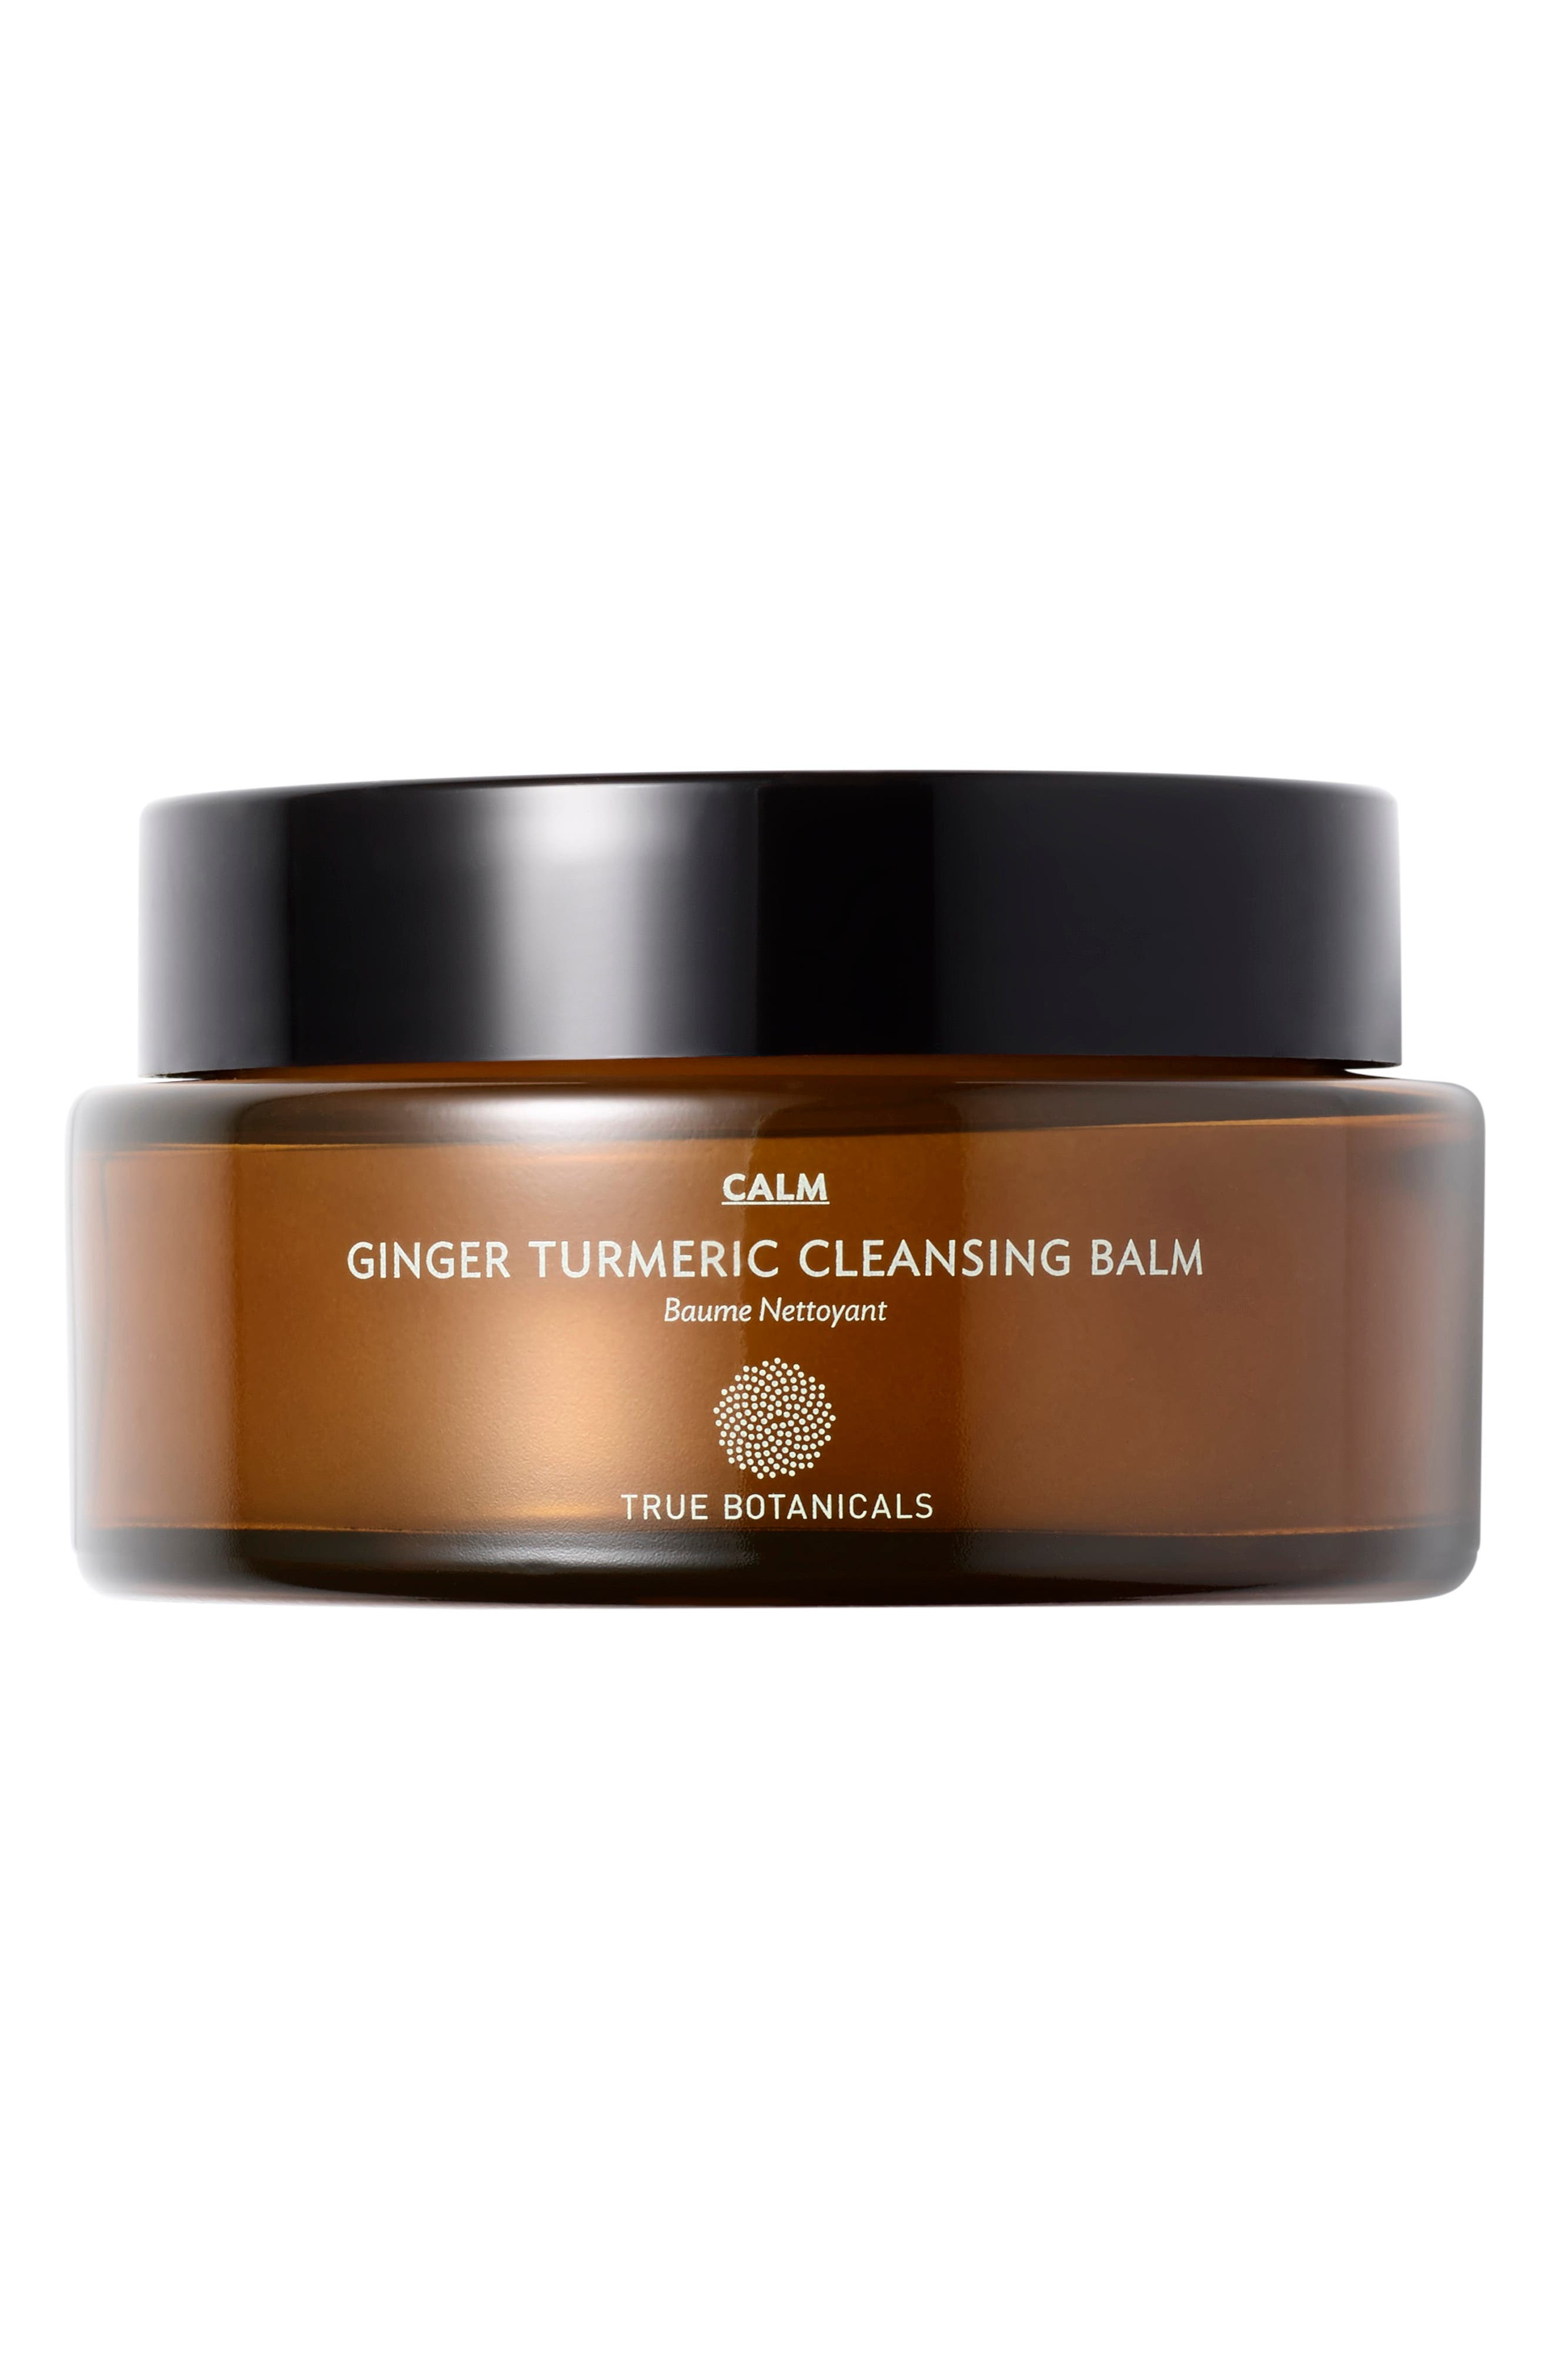 Calm Ginger Turmeric Cleansing Balm | Nordstrom